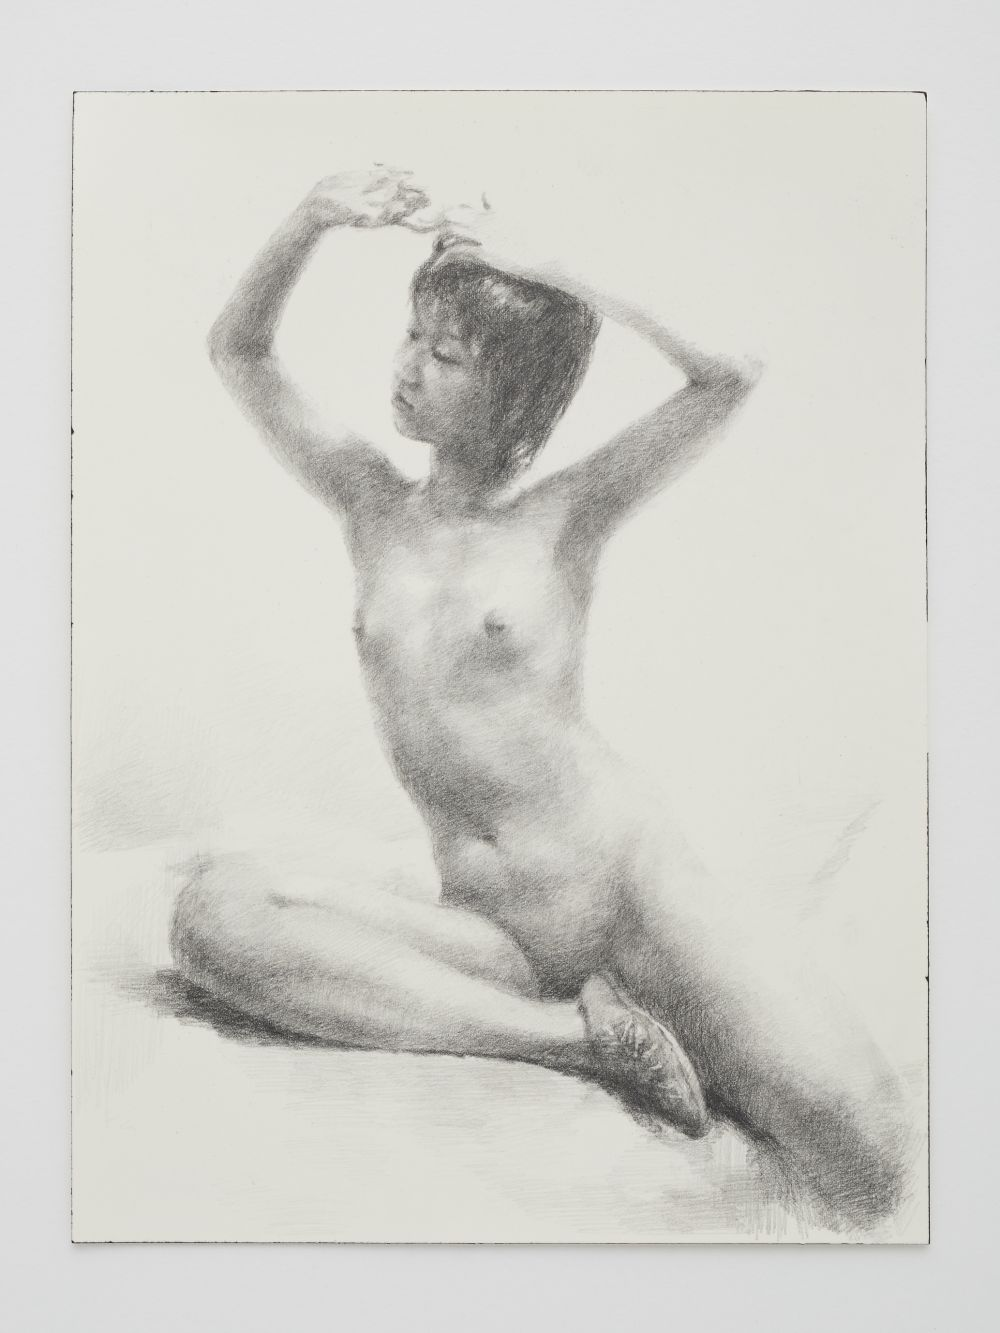 Nude with Raised Arms